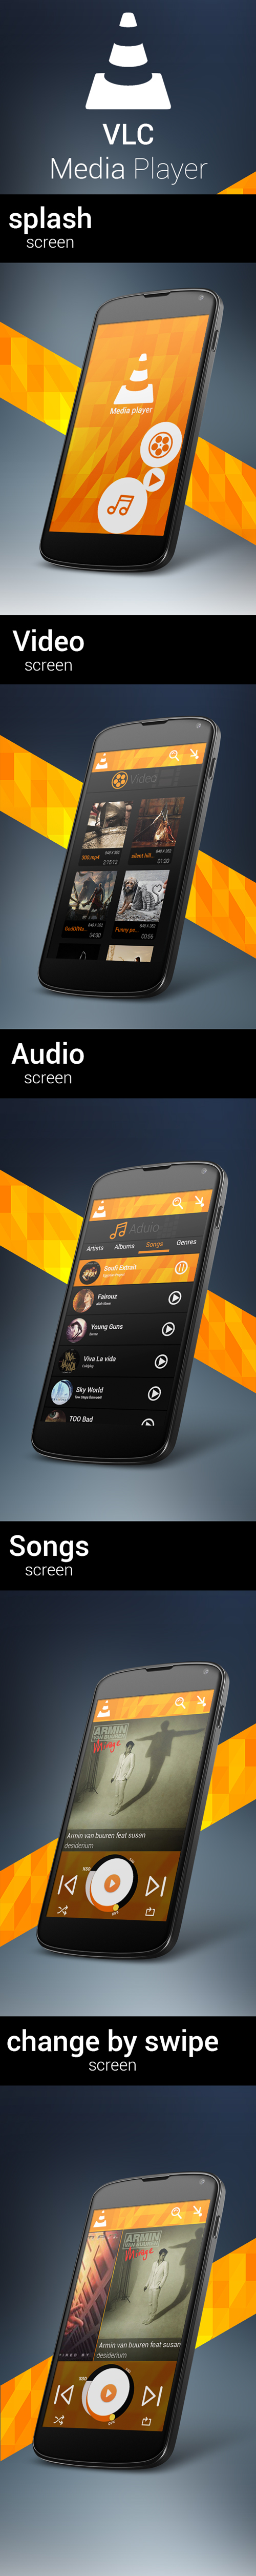 Amazing Mobile App UI Designs with Ultimate User Experience - 48